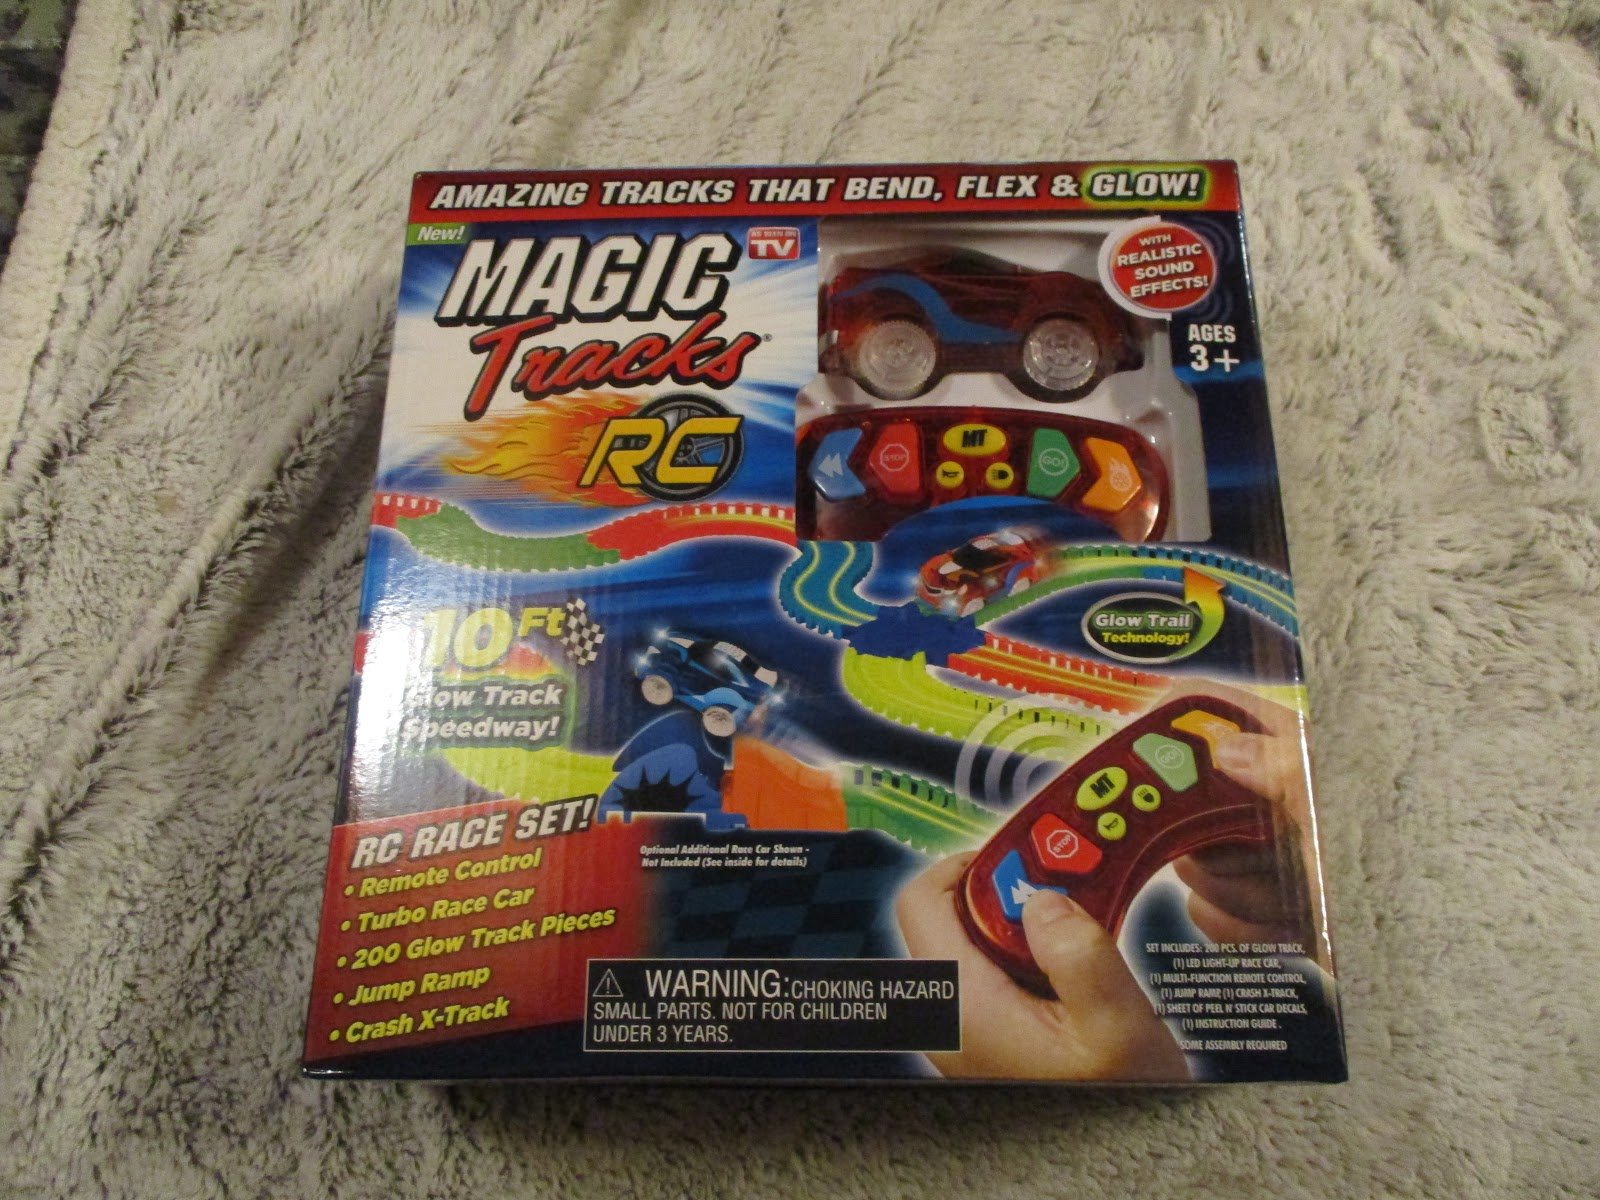 Missys Product Reviews Magic Tracks Turbo Rc Holiday Gift Guide 2018